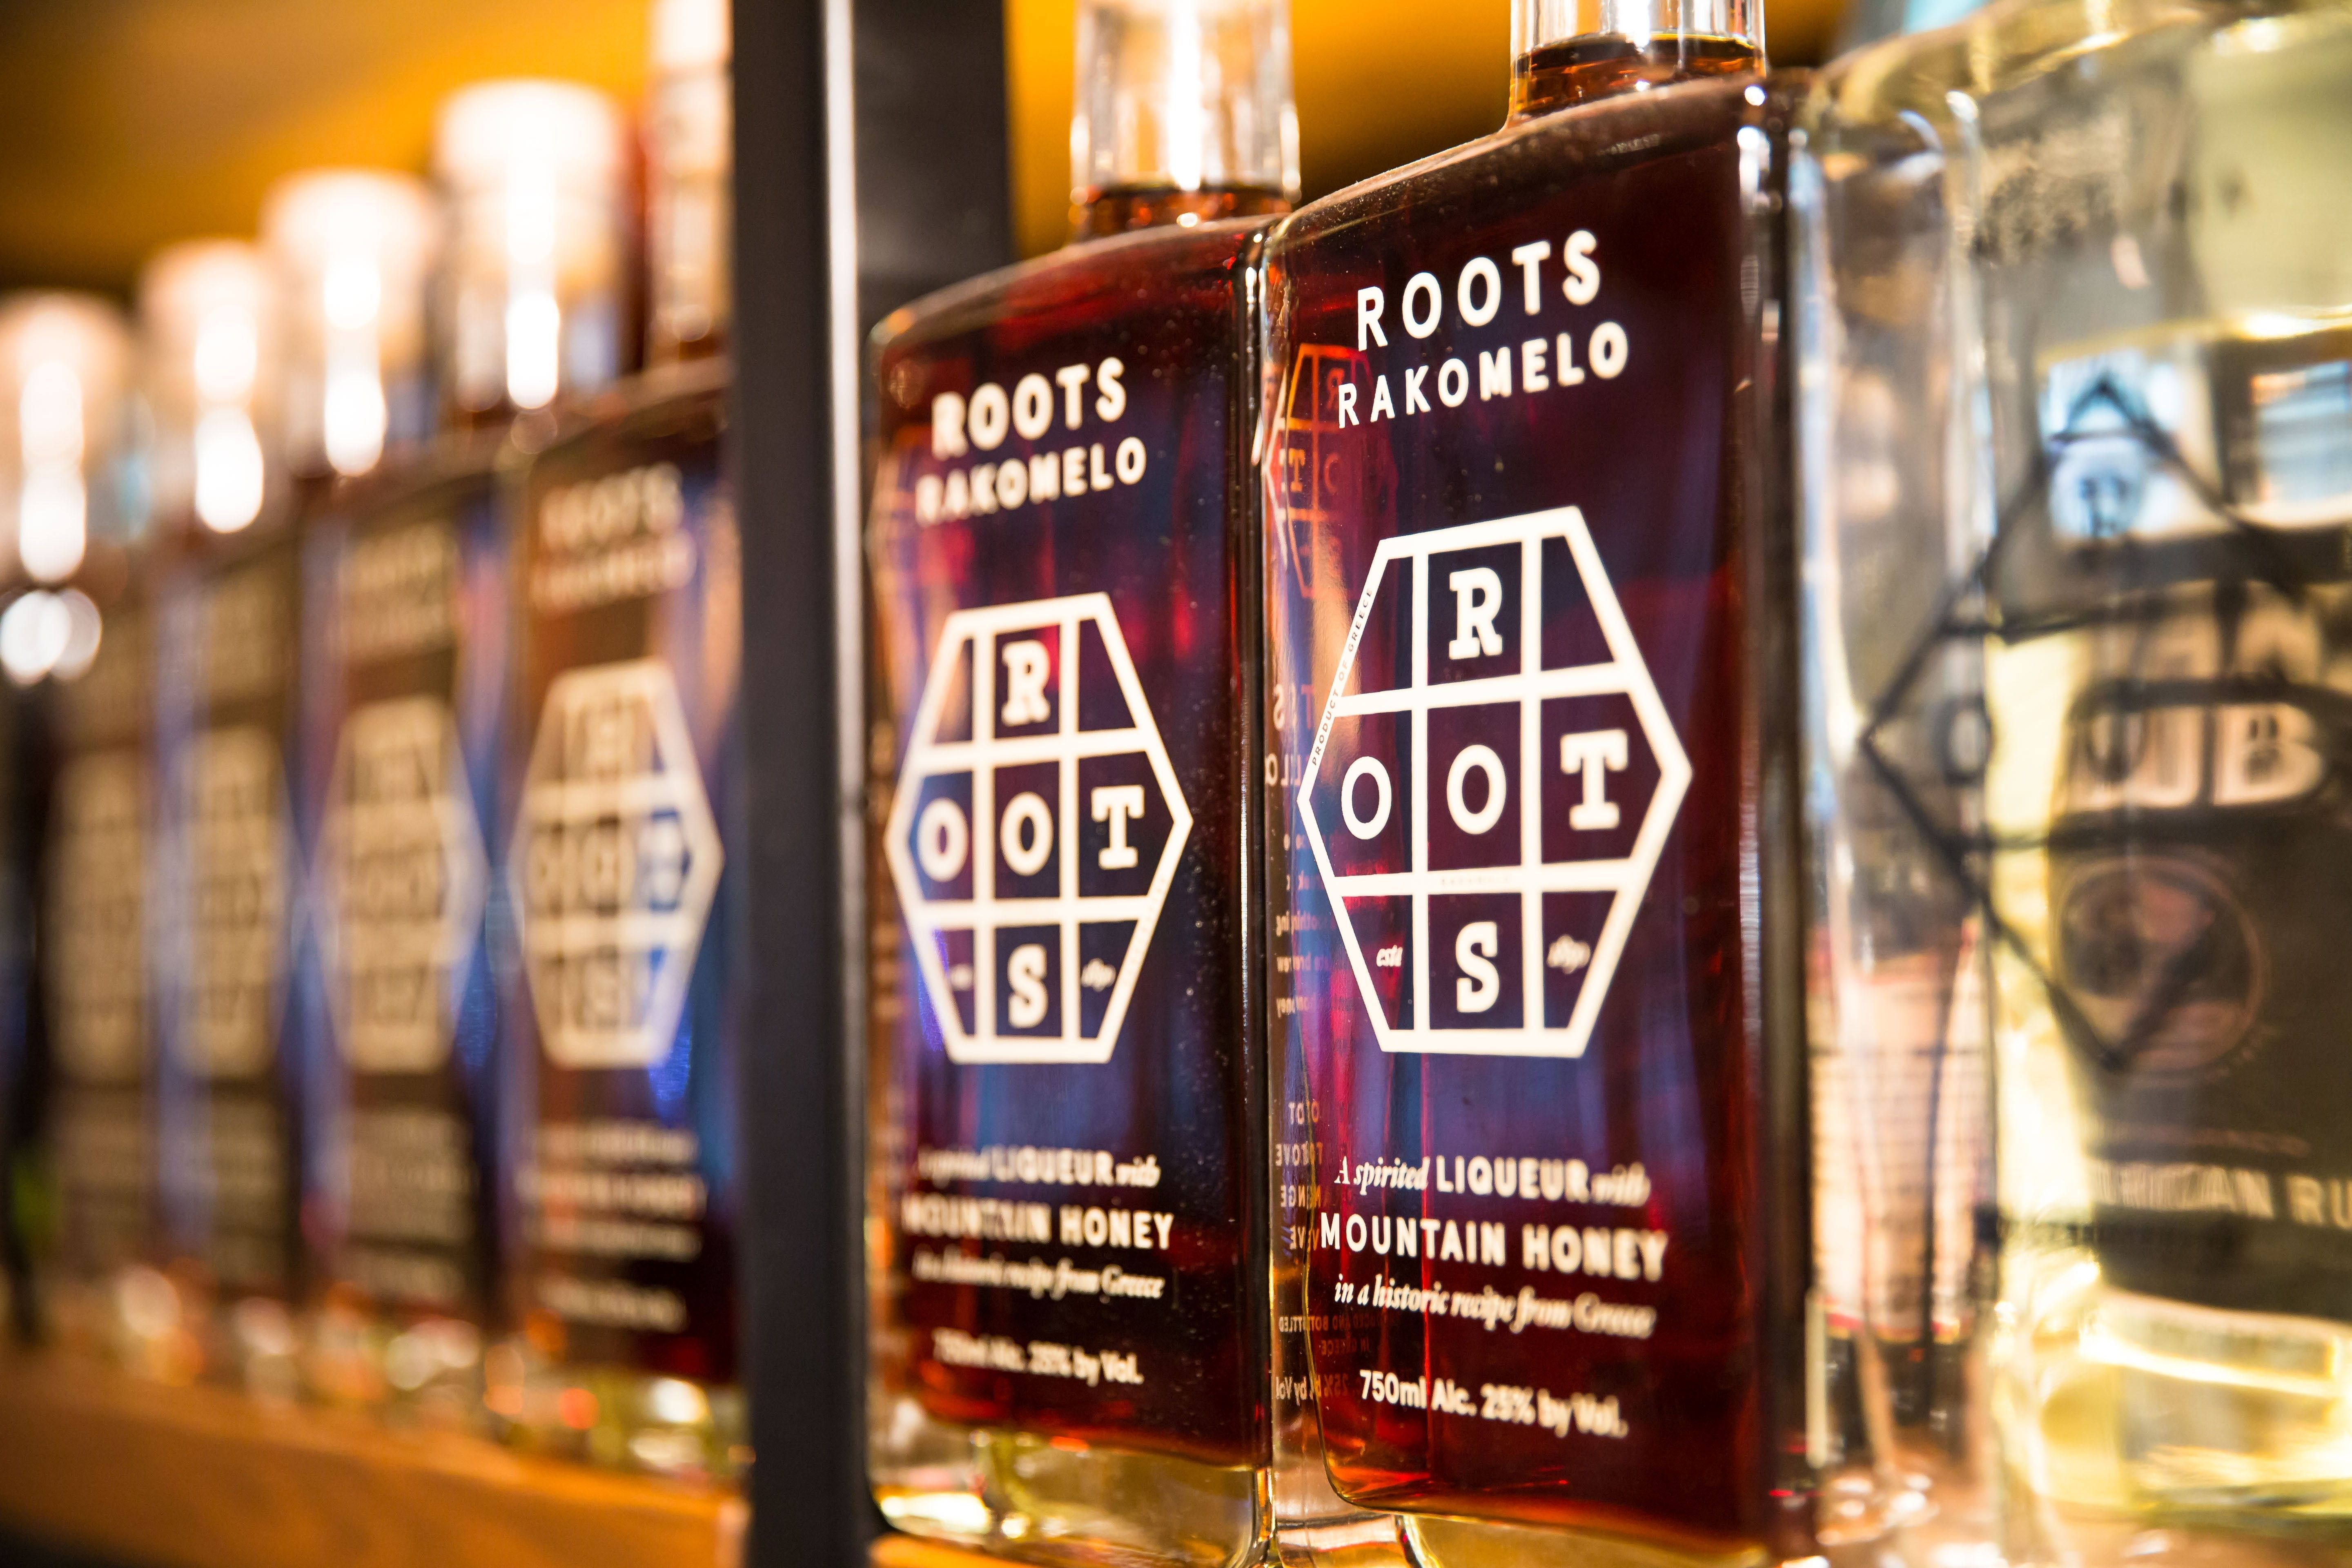 Roots US cocktail competition